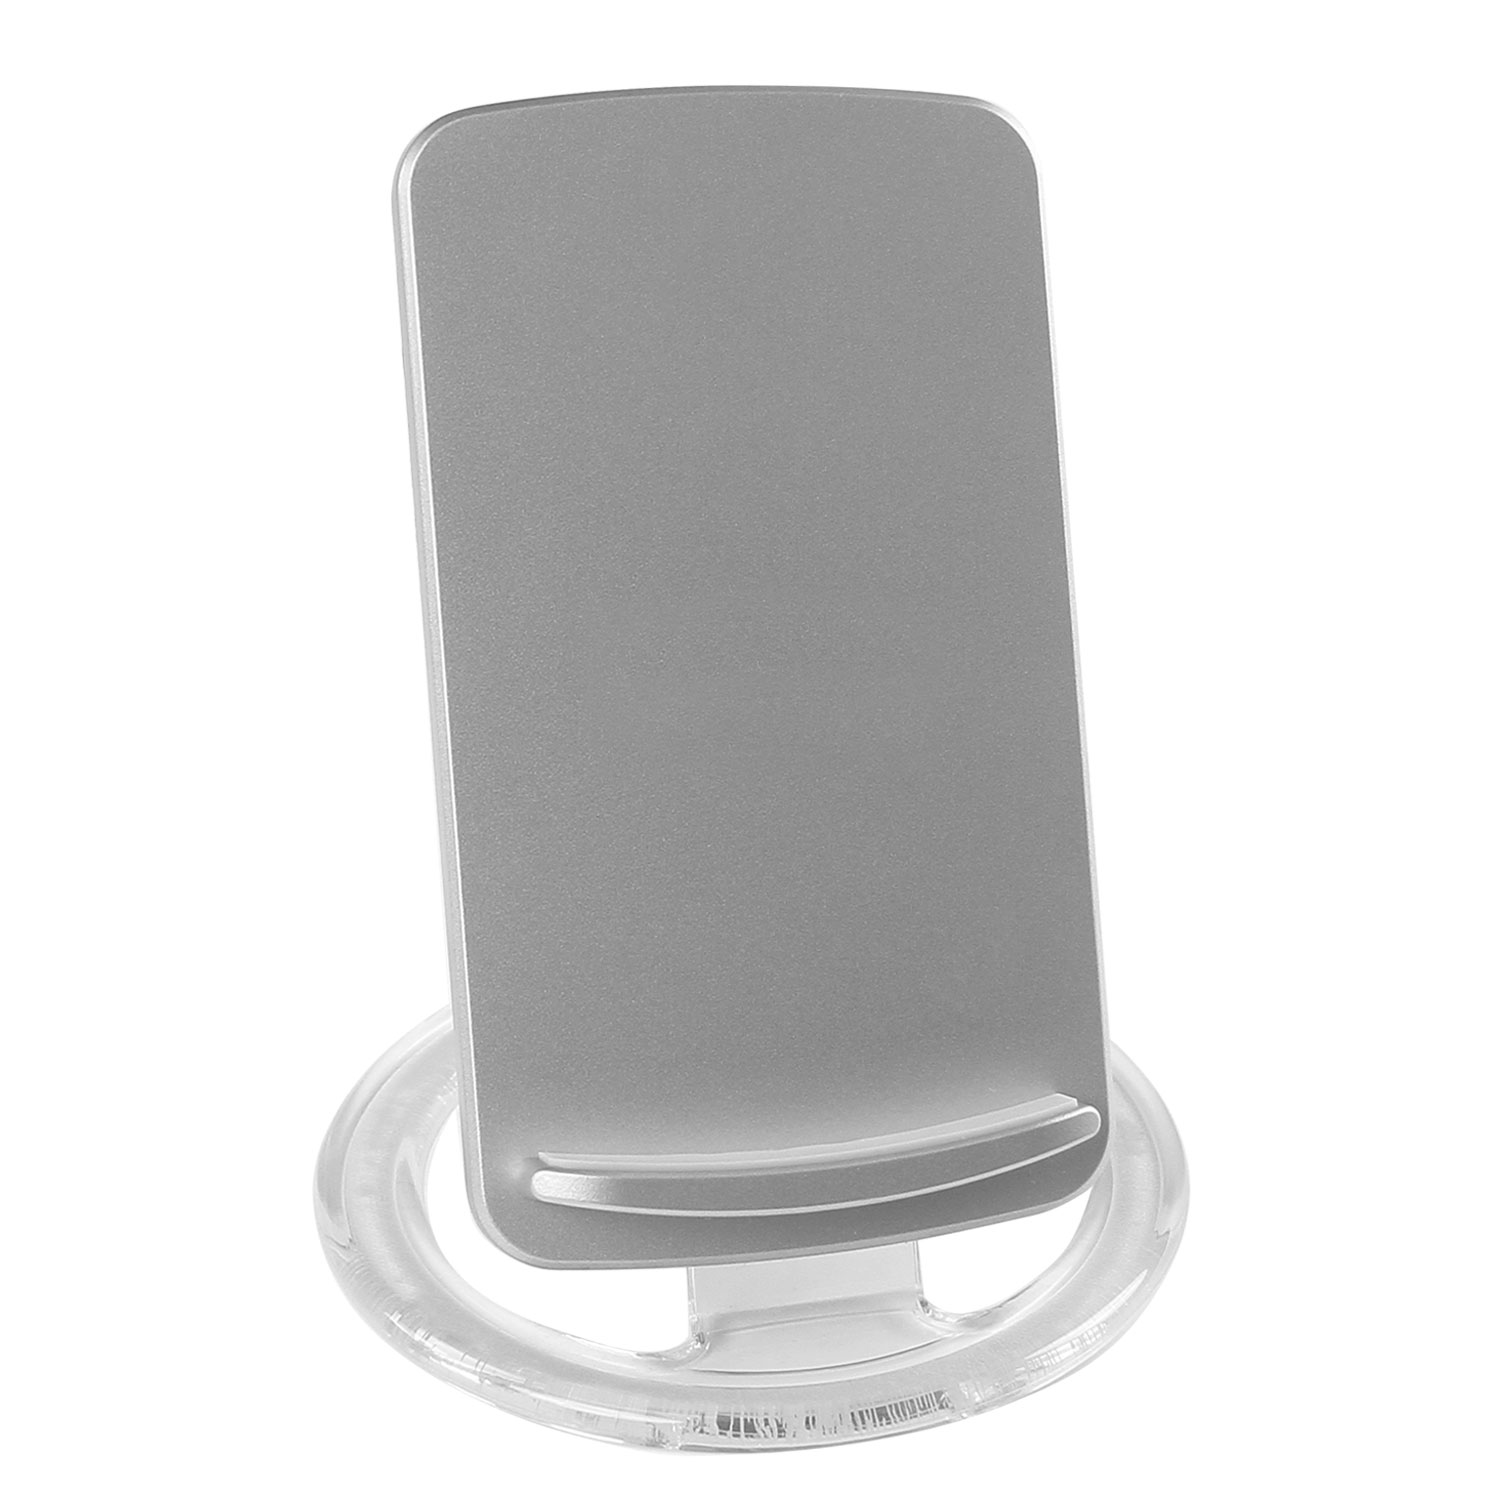 Nokia Lumia 928 Wireless Desktop Charger Silver